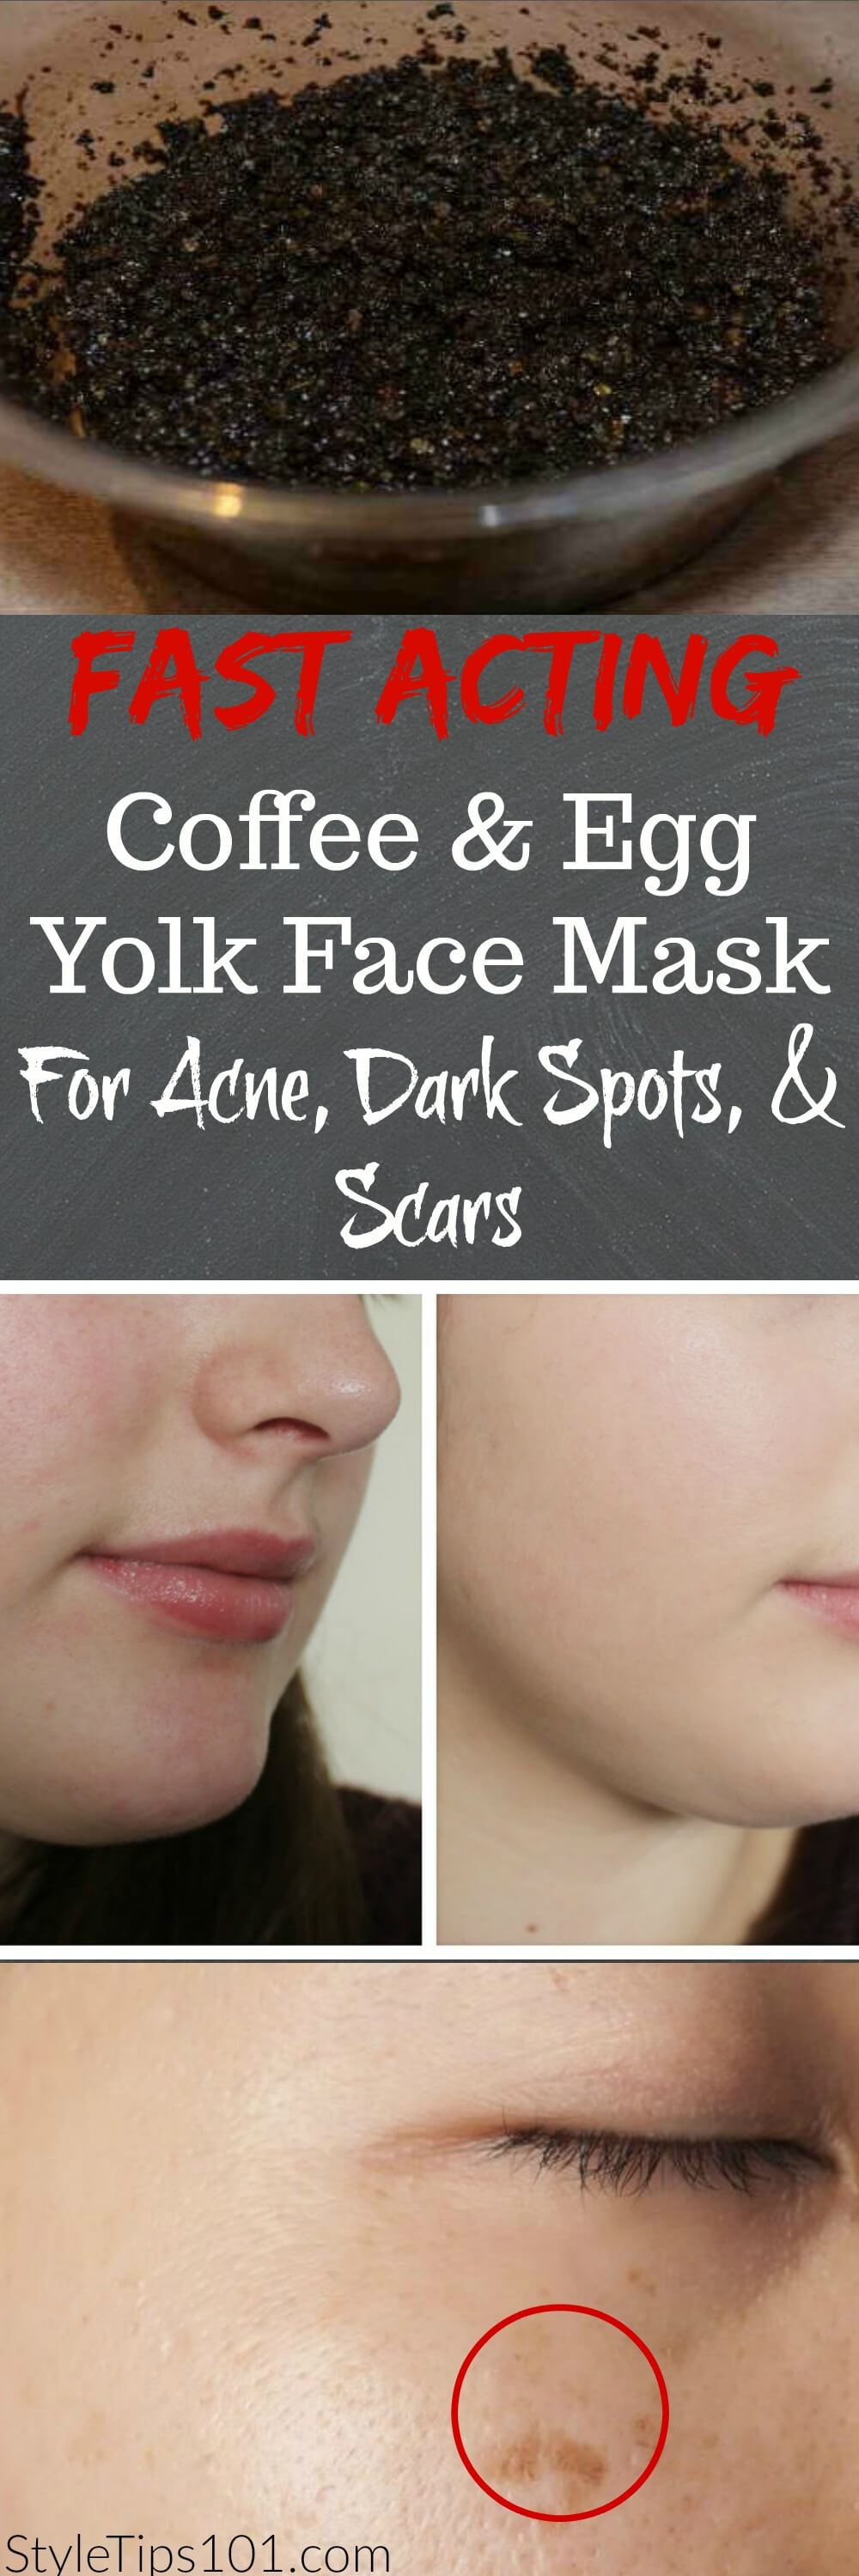 If you have oily and acne prone skin, this egg yolk and coffee face mask will banish blemishes and clear up skin in a very short amount of time.